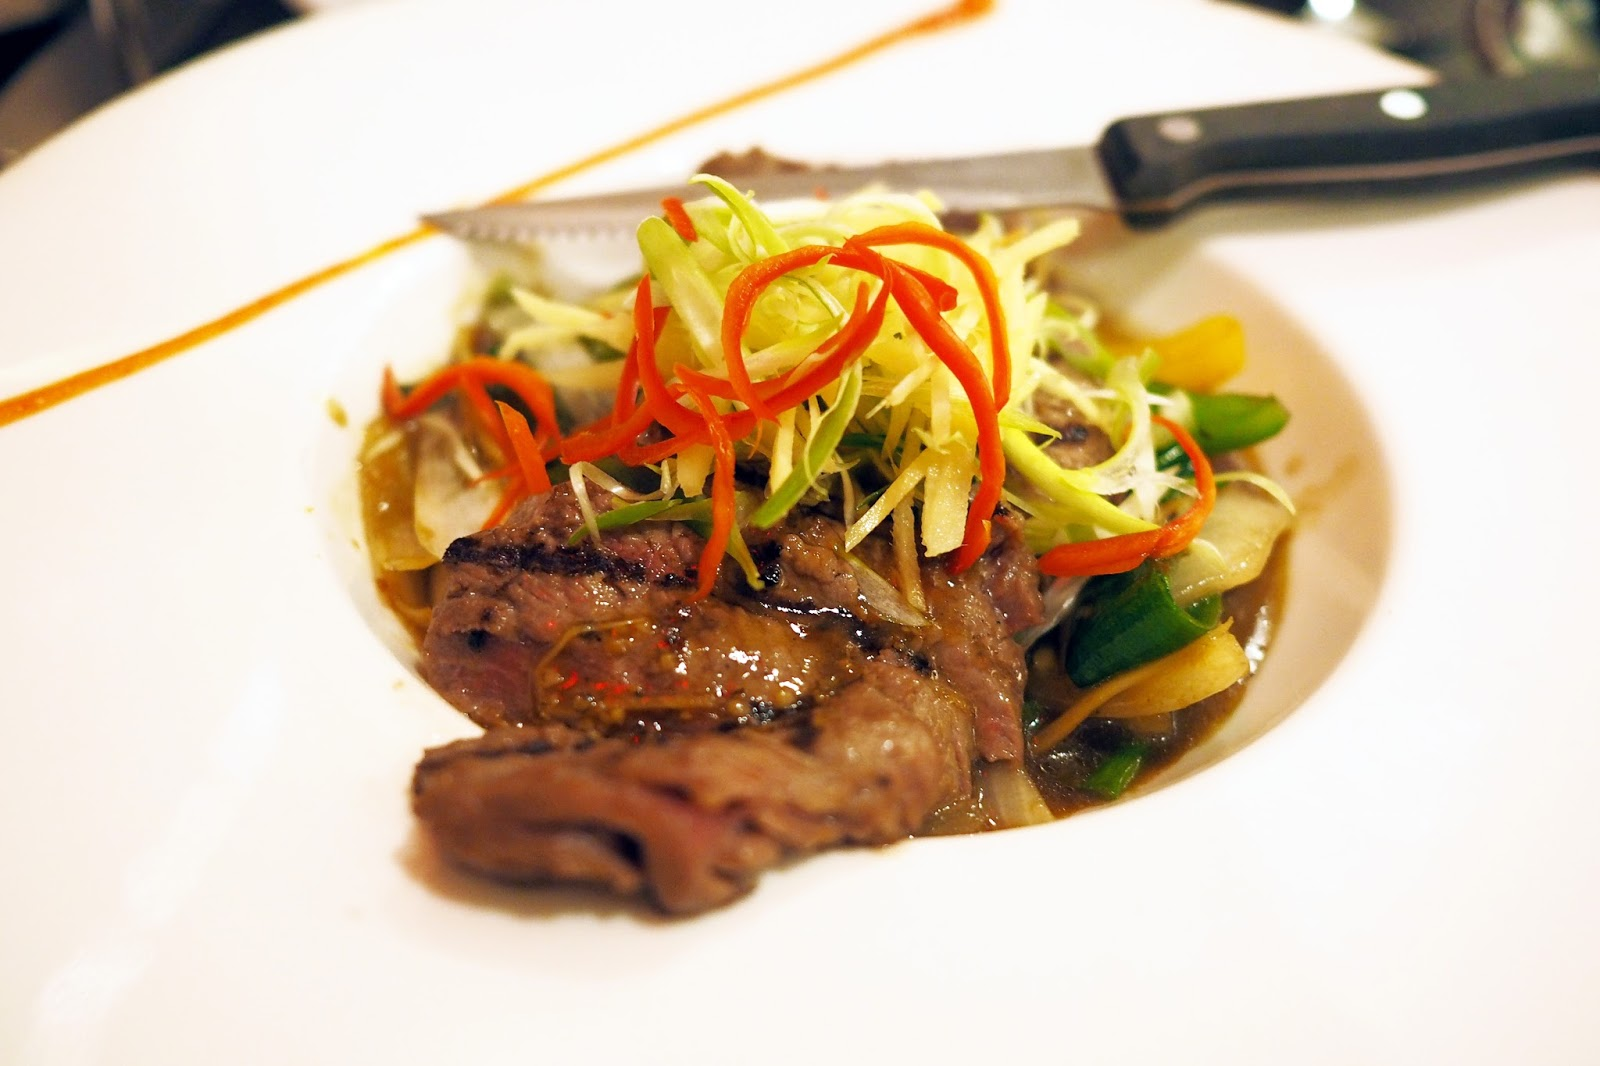 grilled sirloin beef